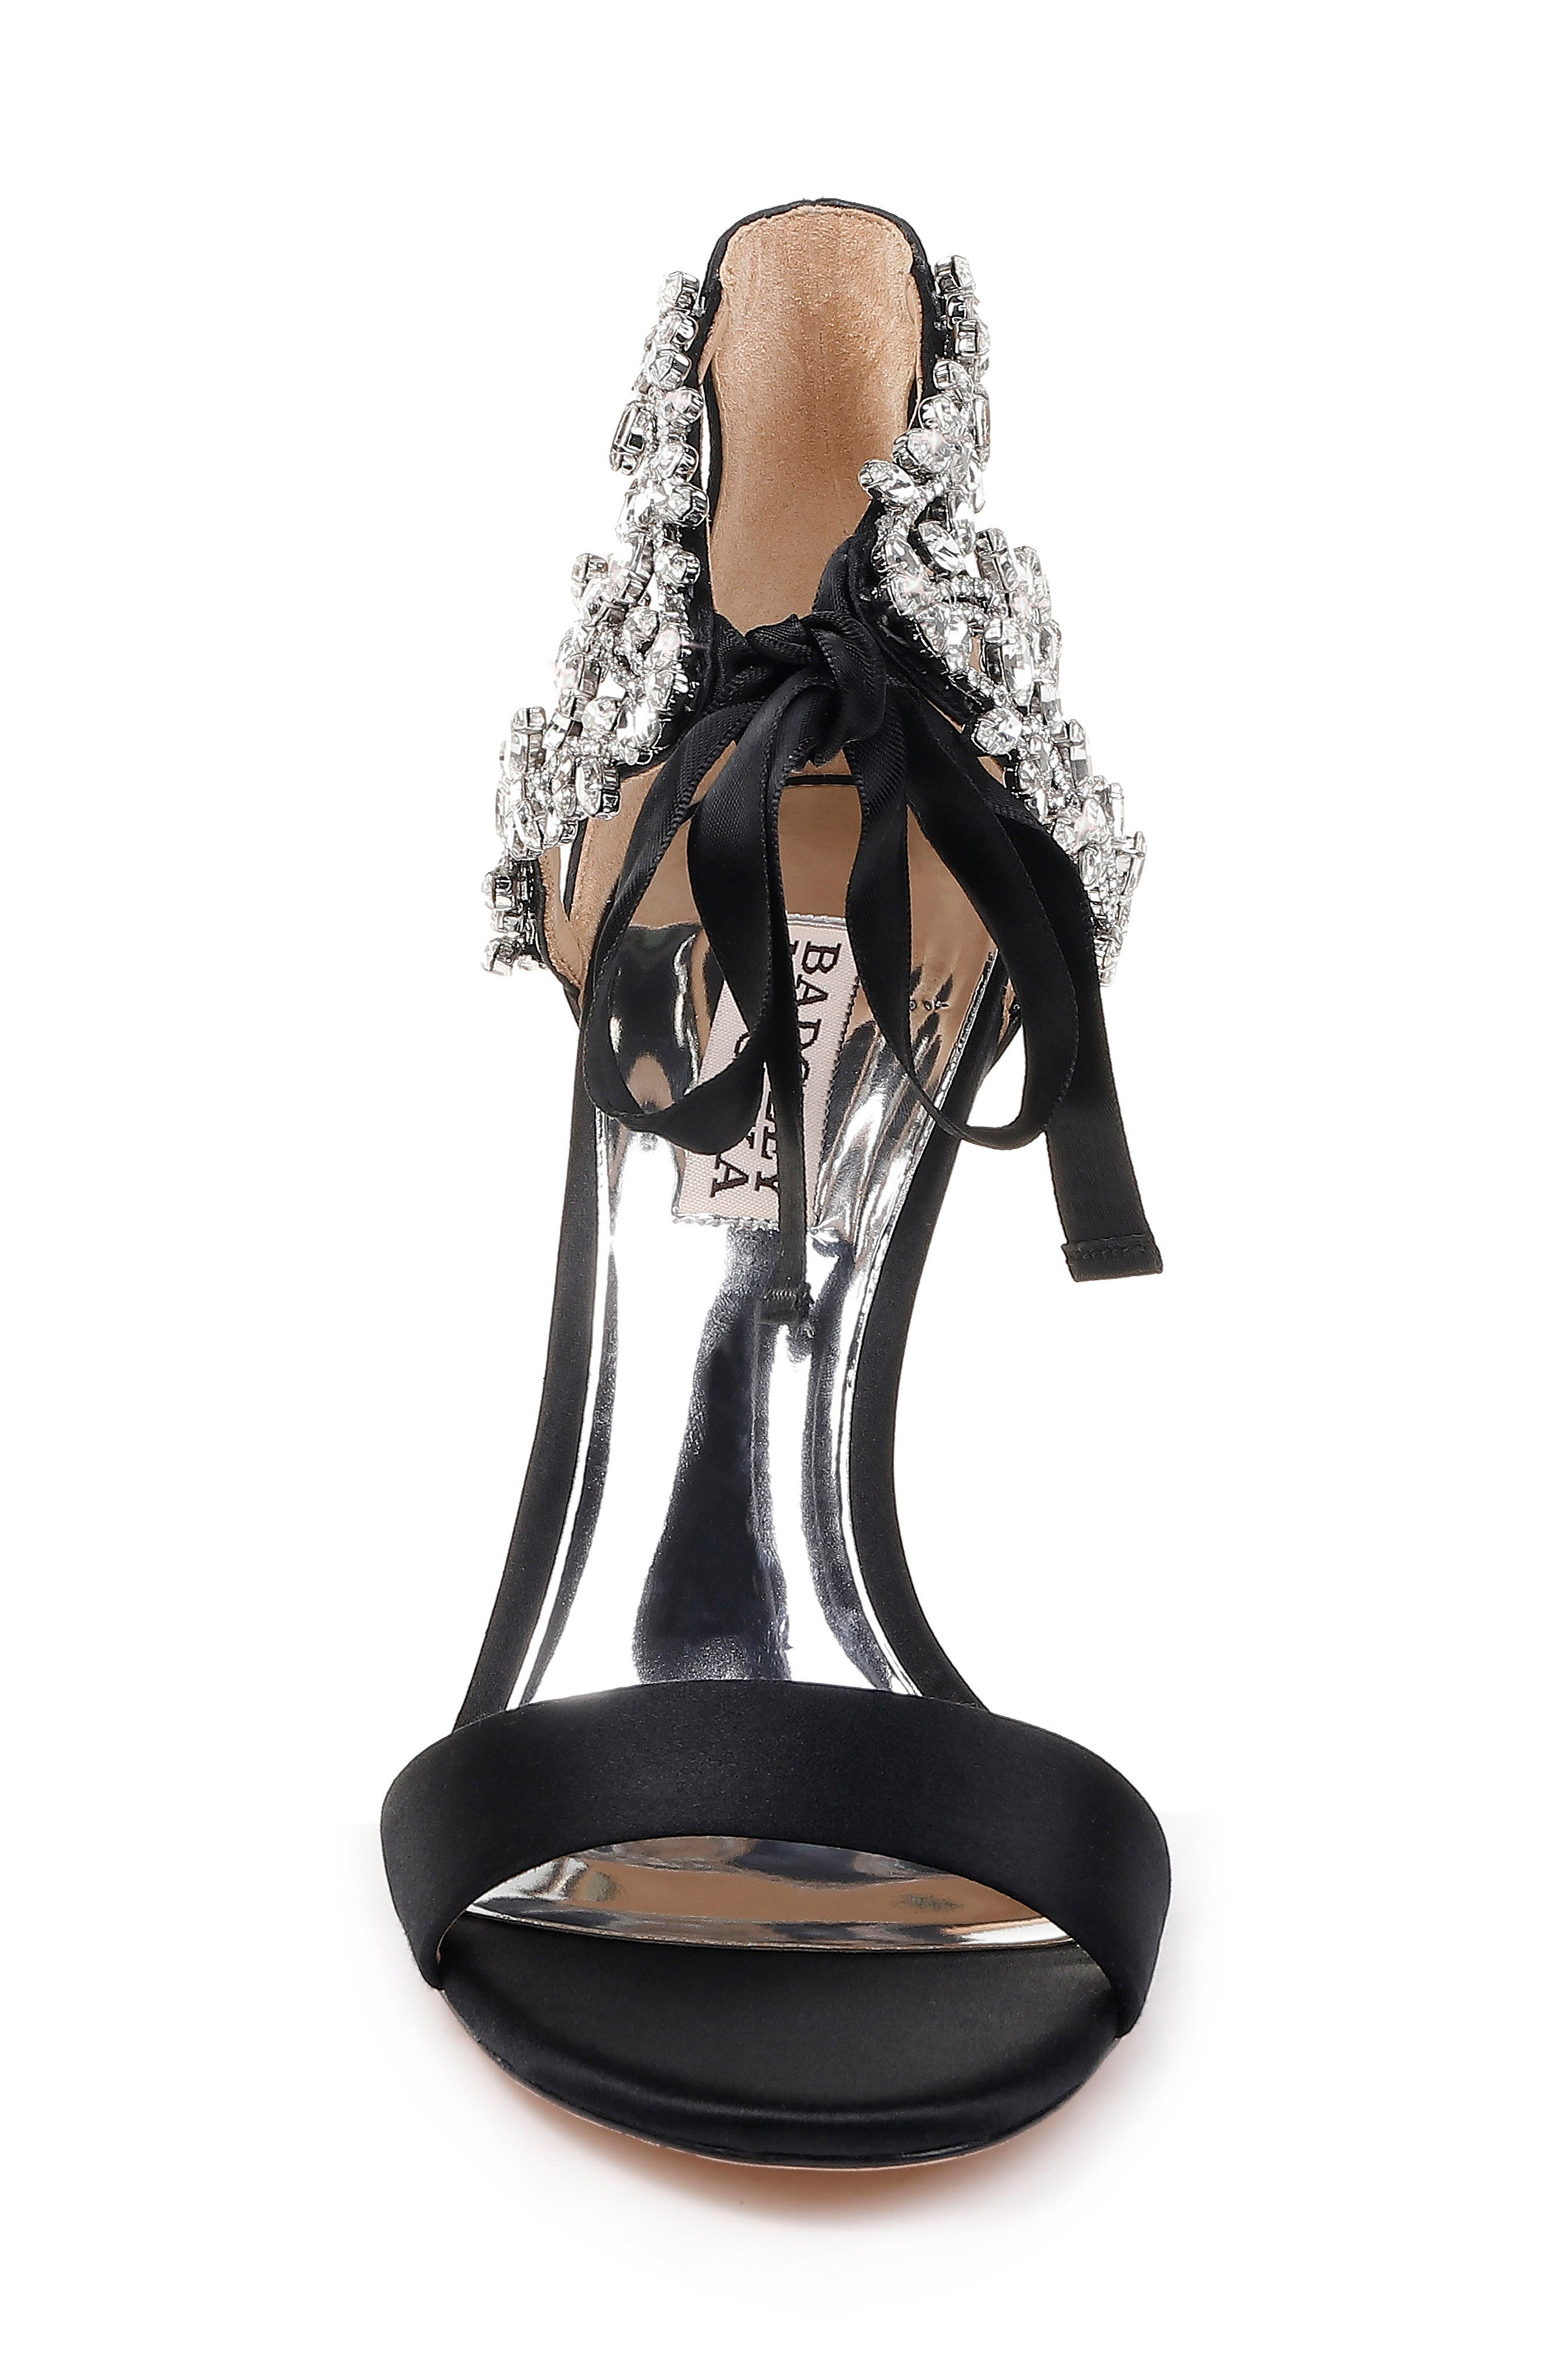 BADGLEY MISCHKA COLLECTION, Badgley Mischka Felicia Embellished Sandal, Alternate thumbnail 4, color, 015